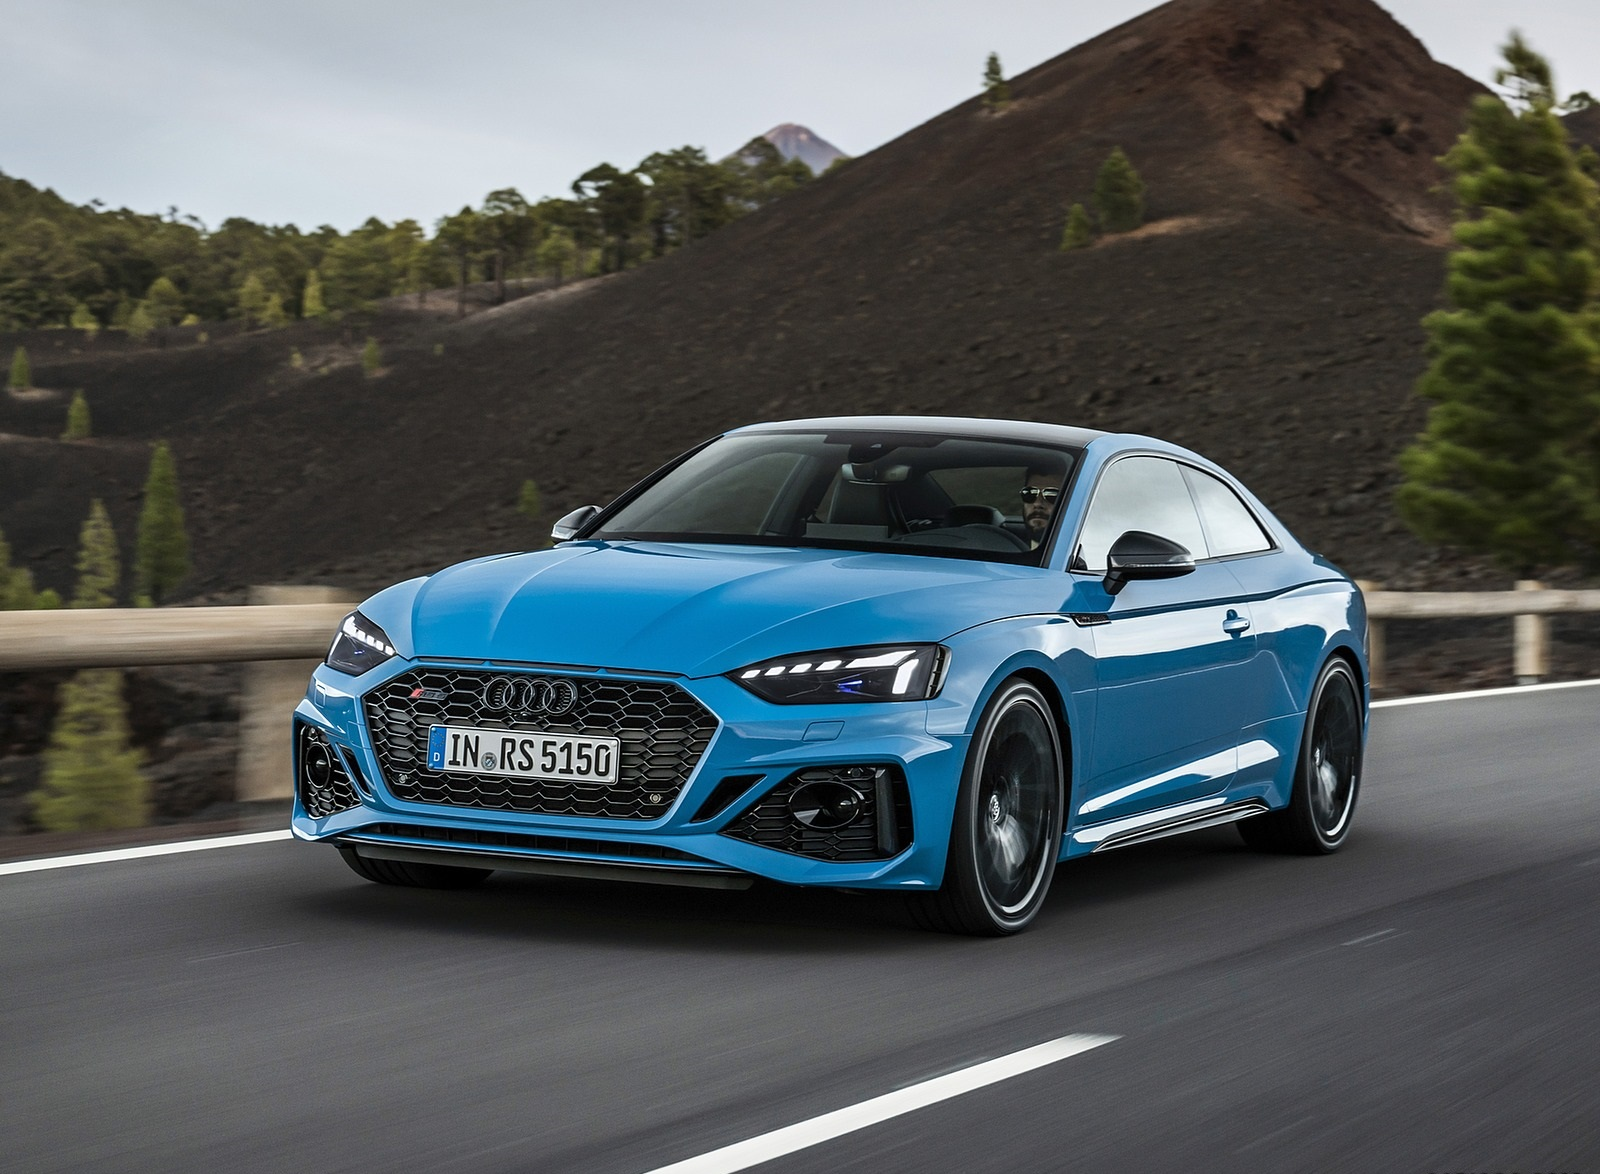 2020 Audi RS 5 Coupe (Color: Turbo Blue) Front Three-Quarter Wallpapers (1)